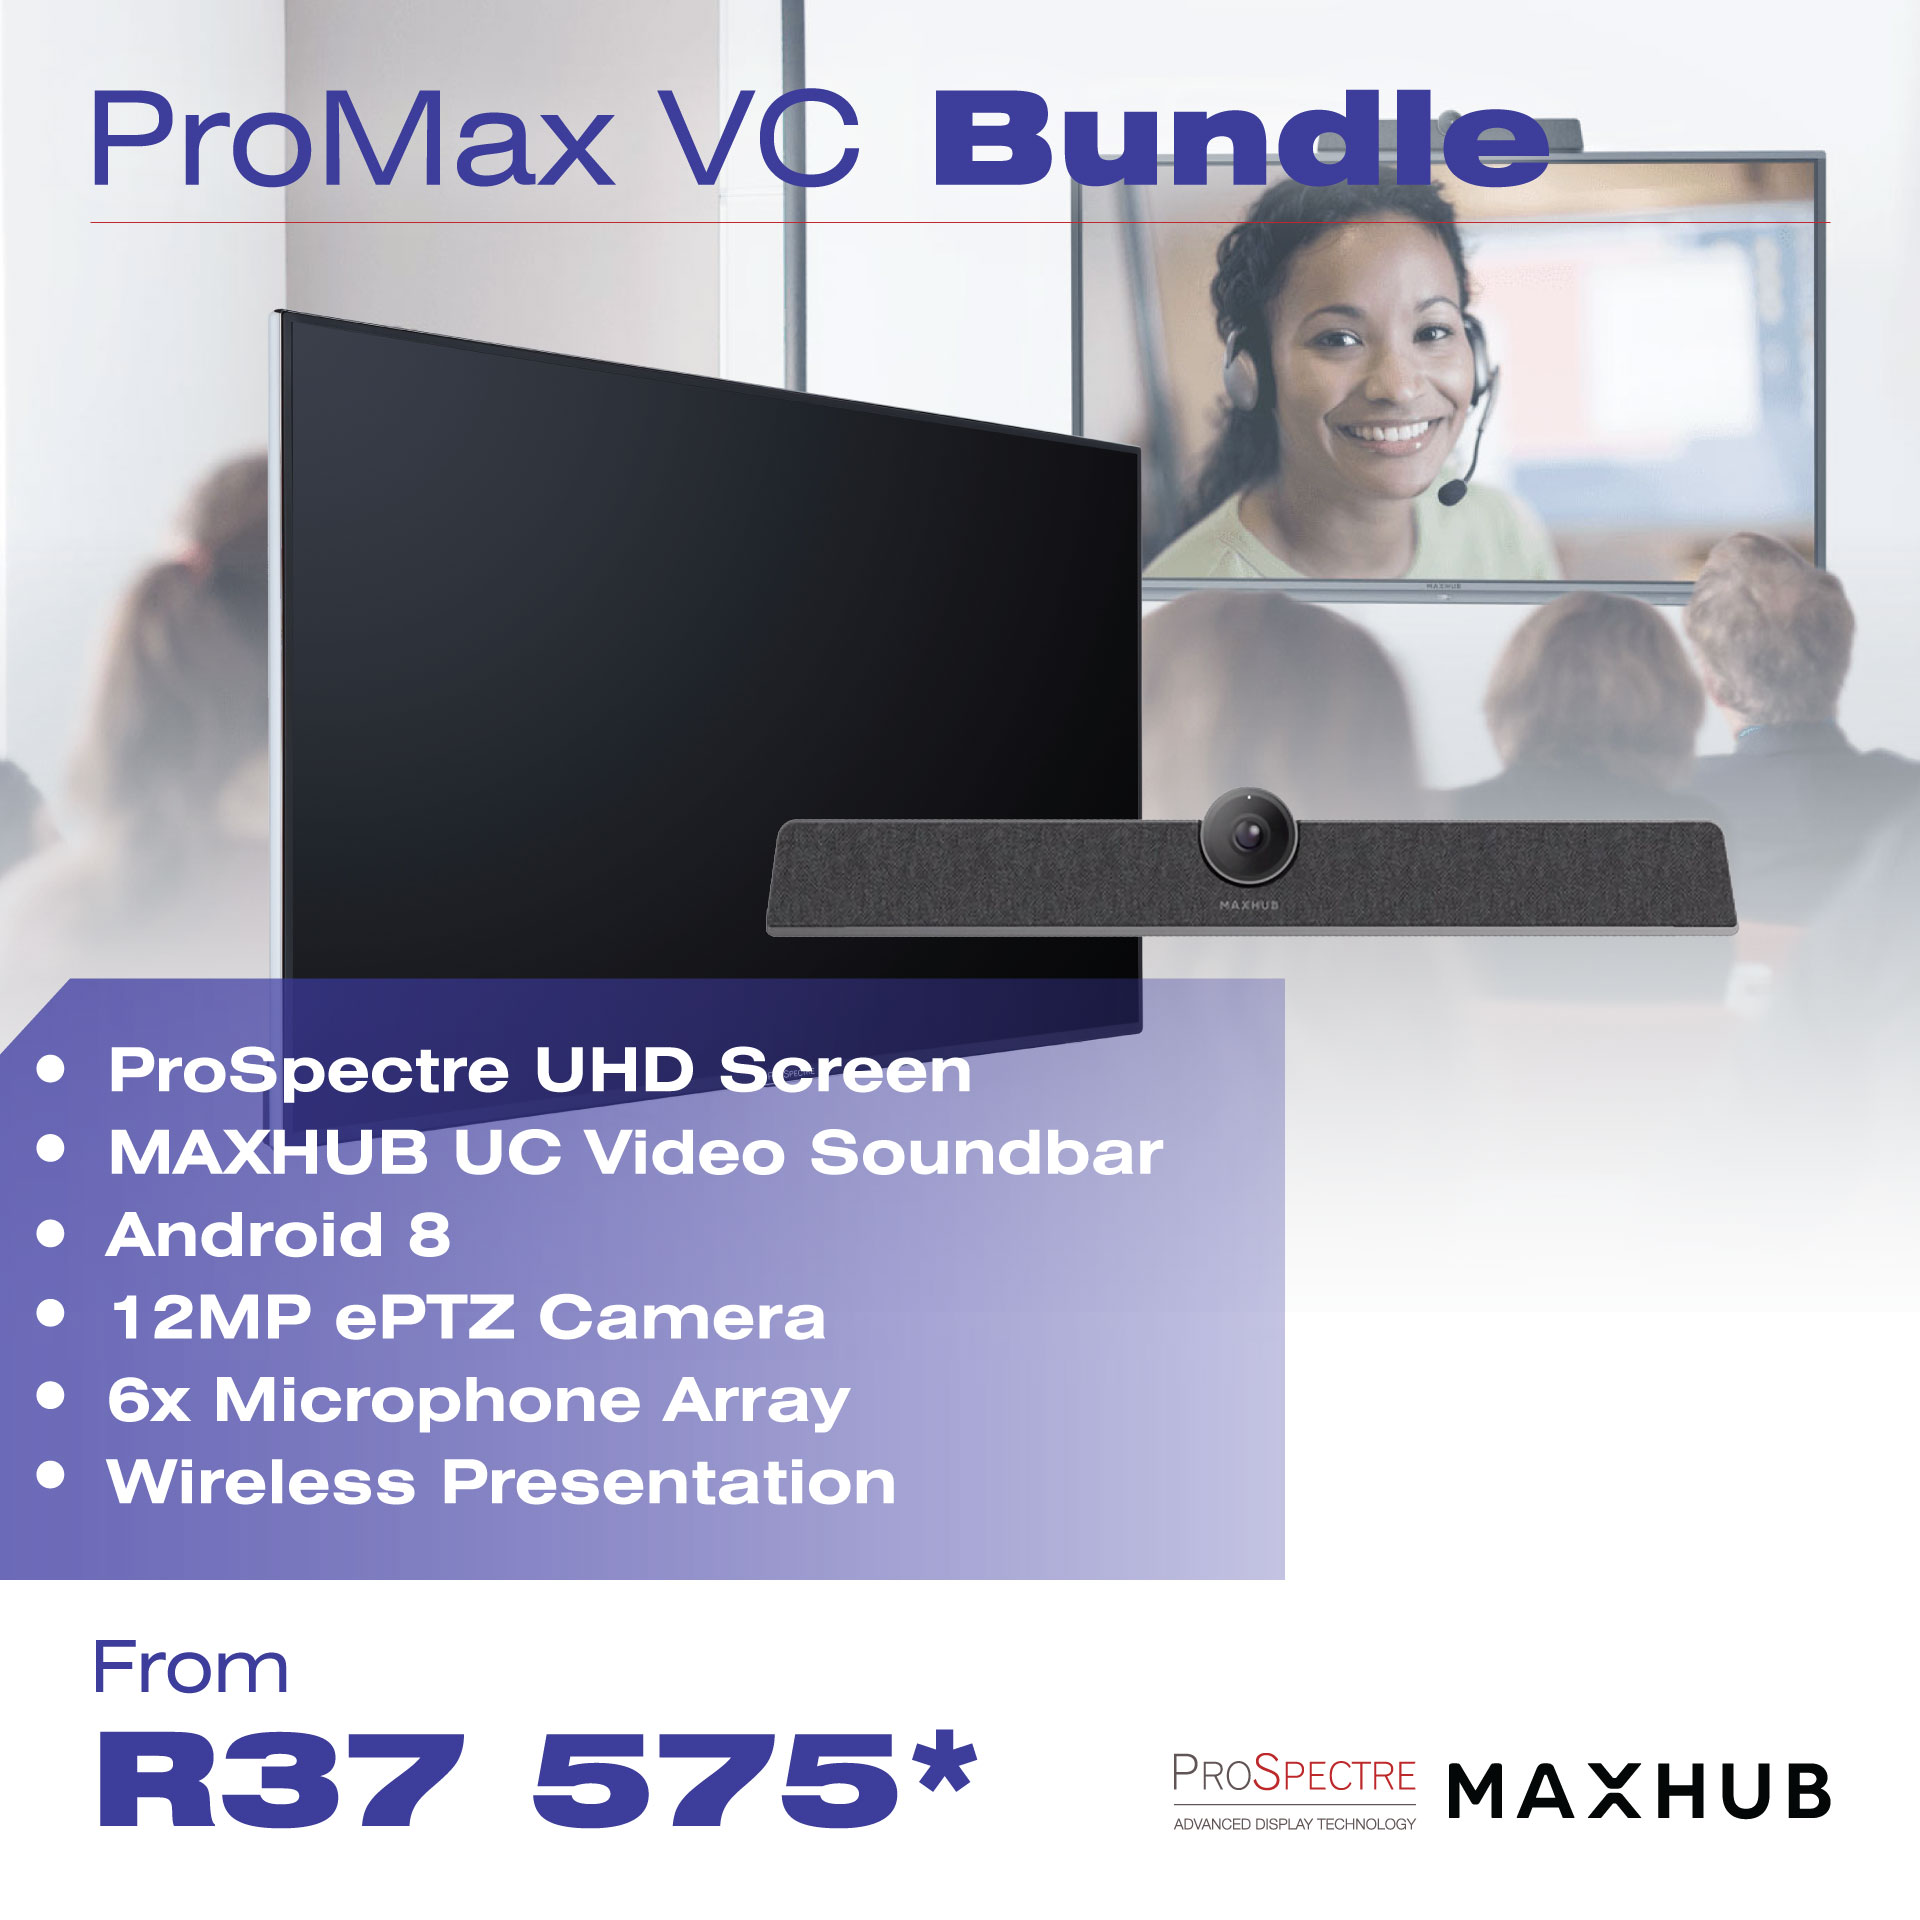 Video Conferencing Bundles Web Page ProMax